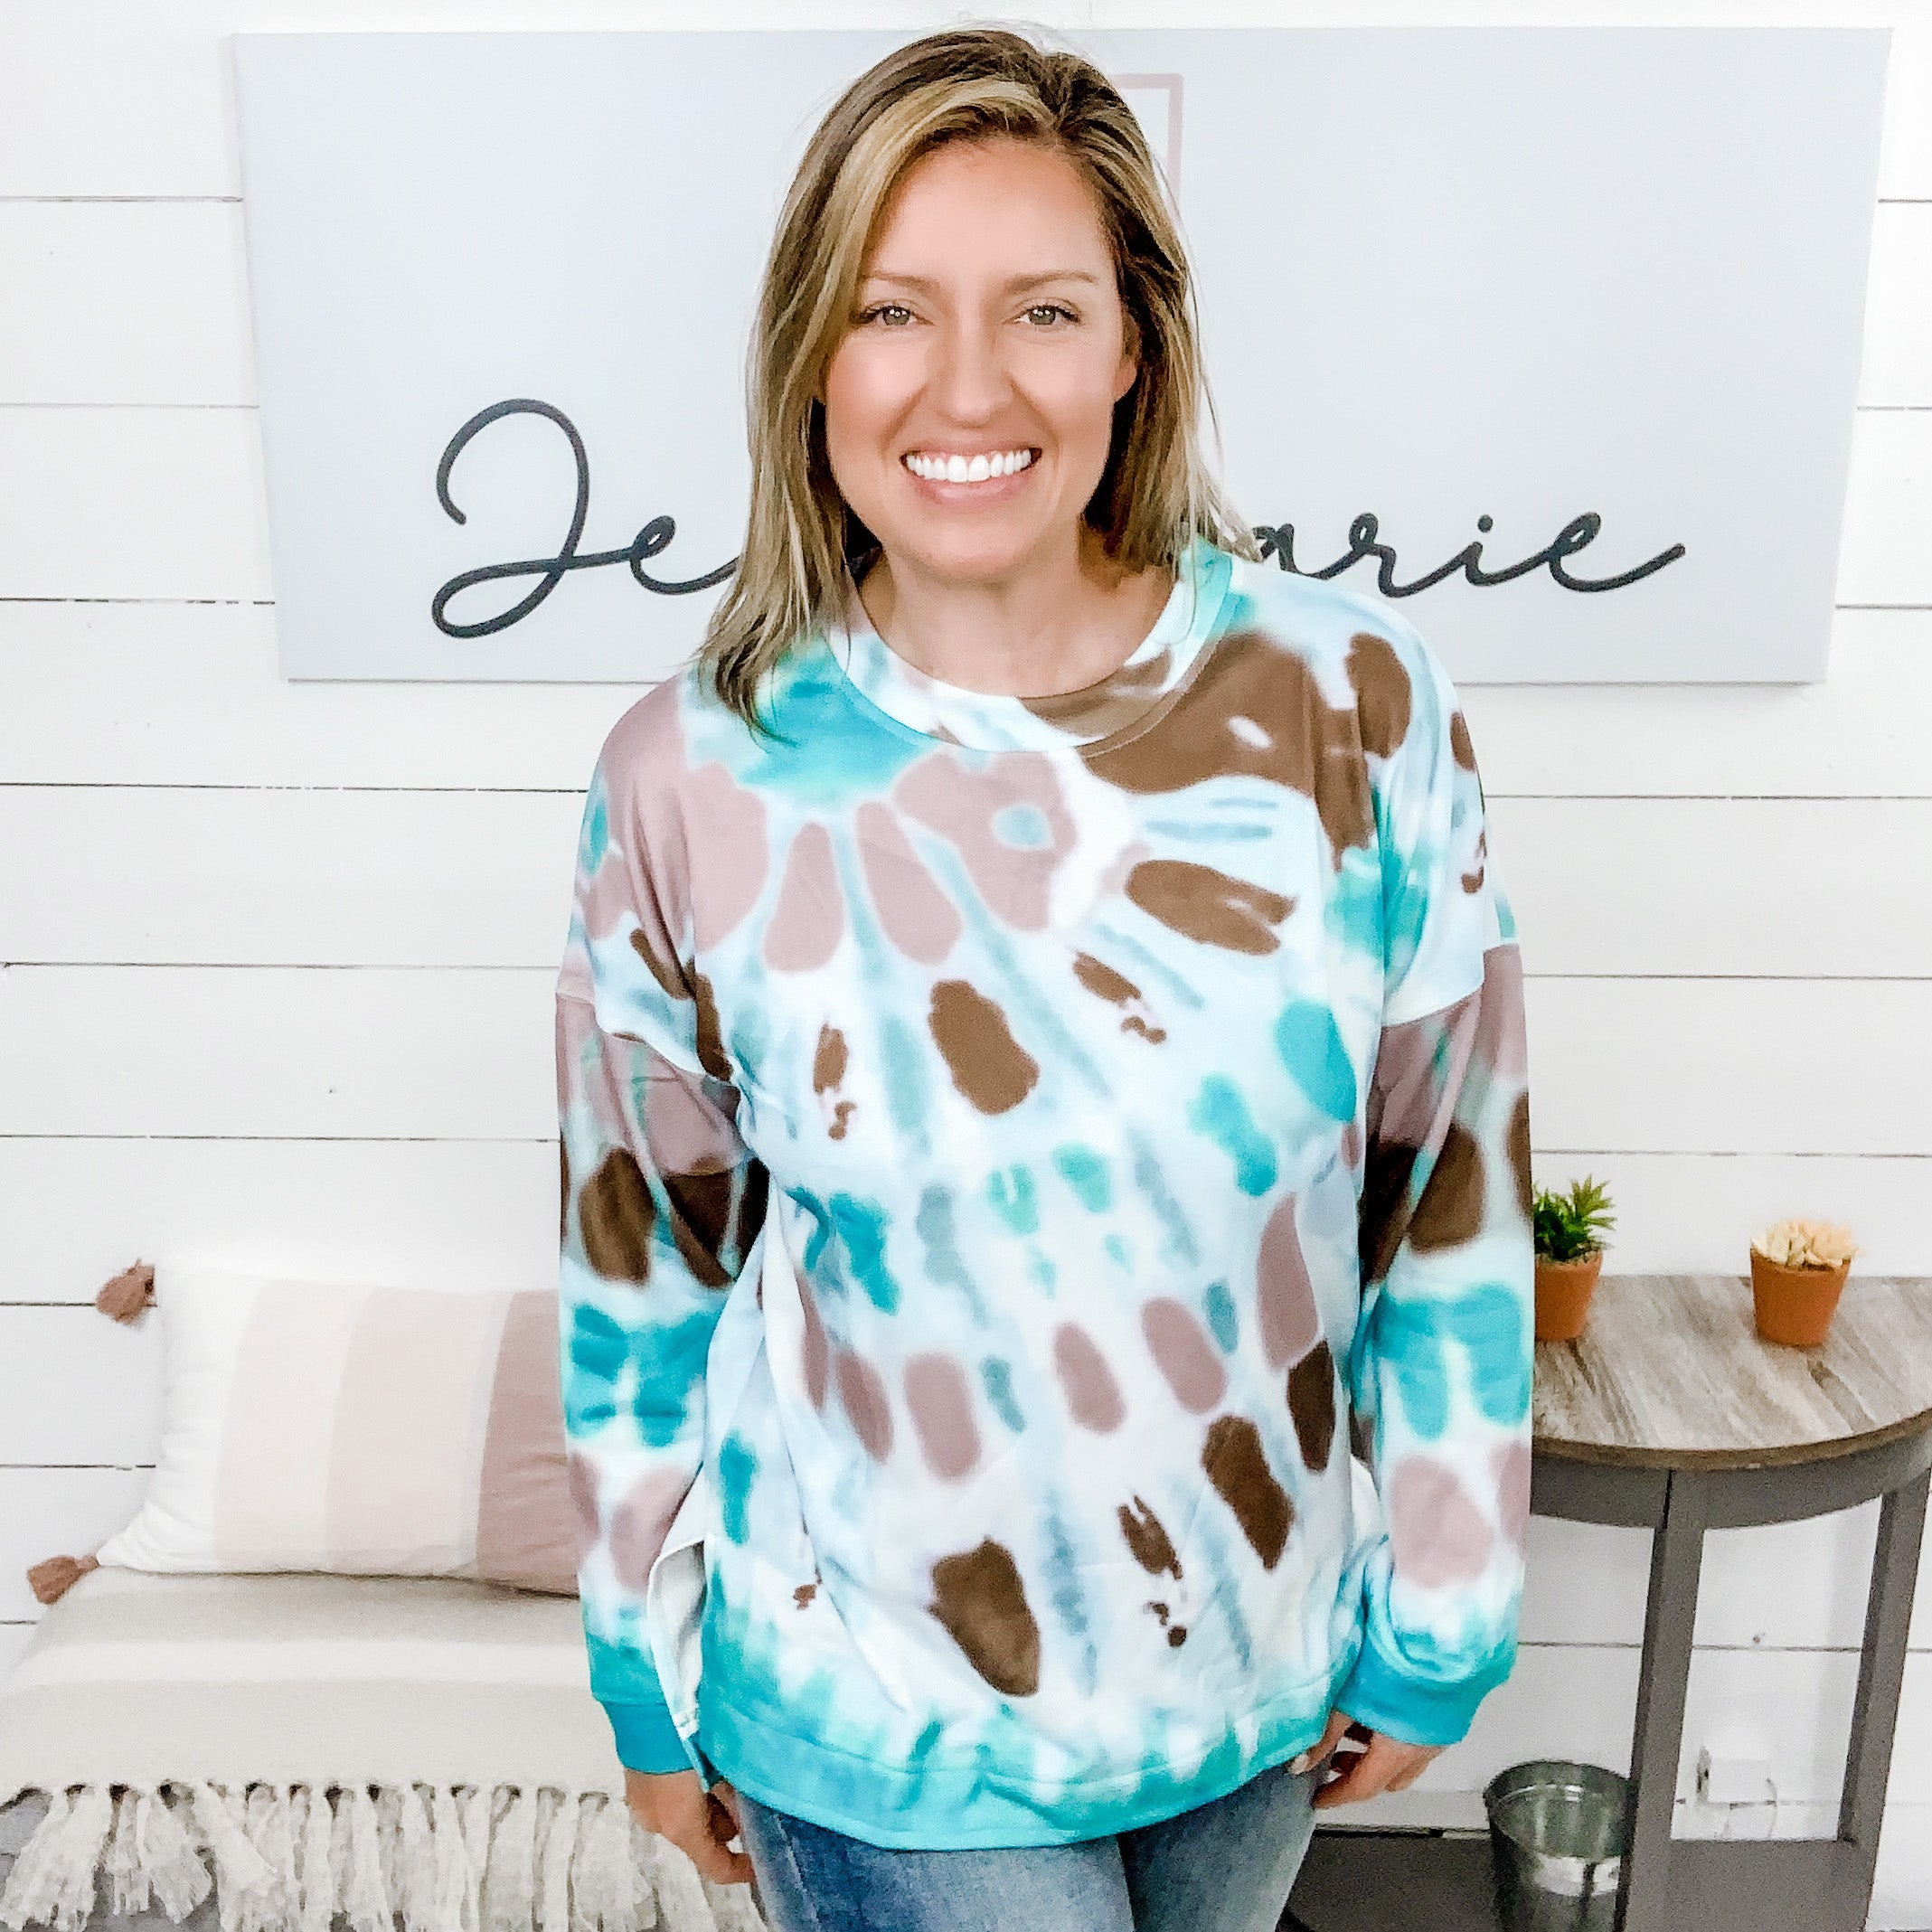 Long Sleeved Hi-Low Hem, Aqua/Mocha/Brown Tie Dye Top